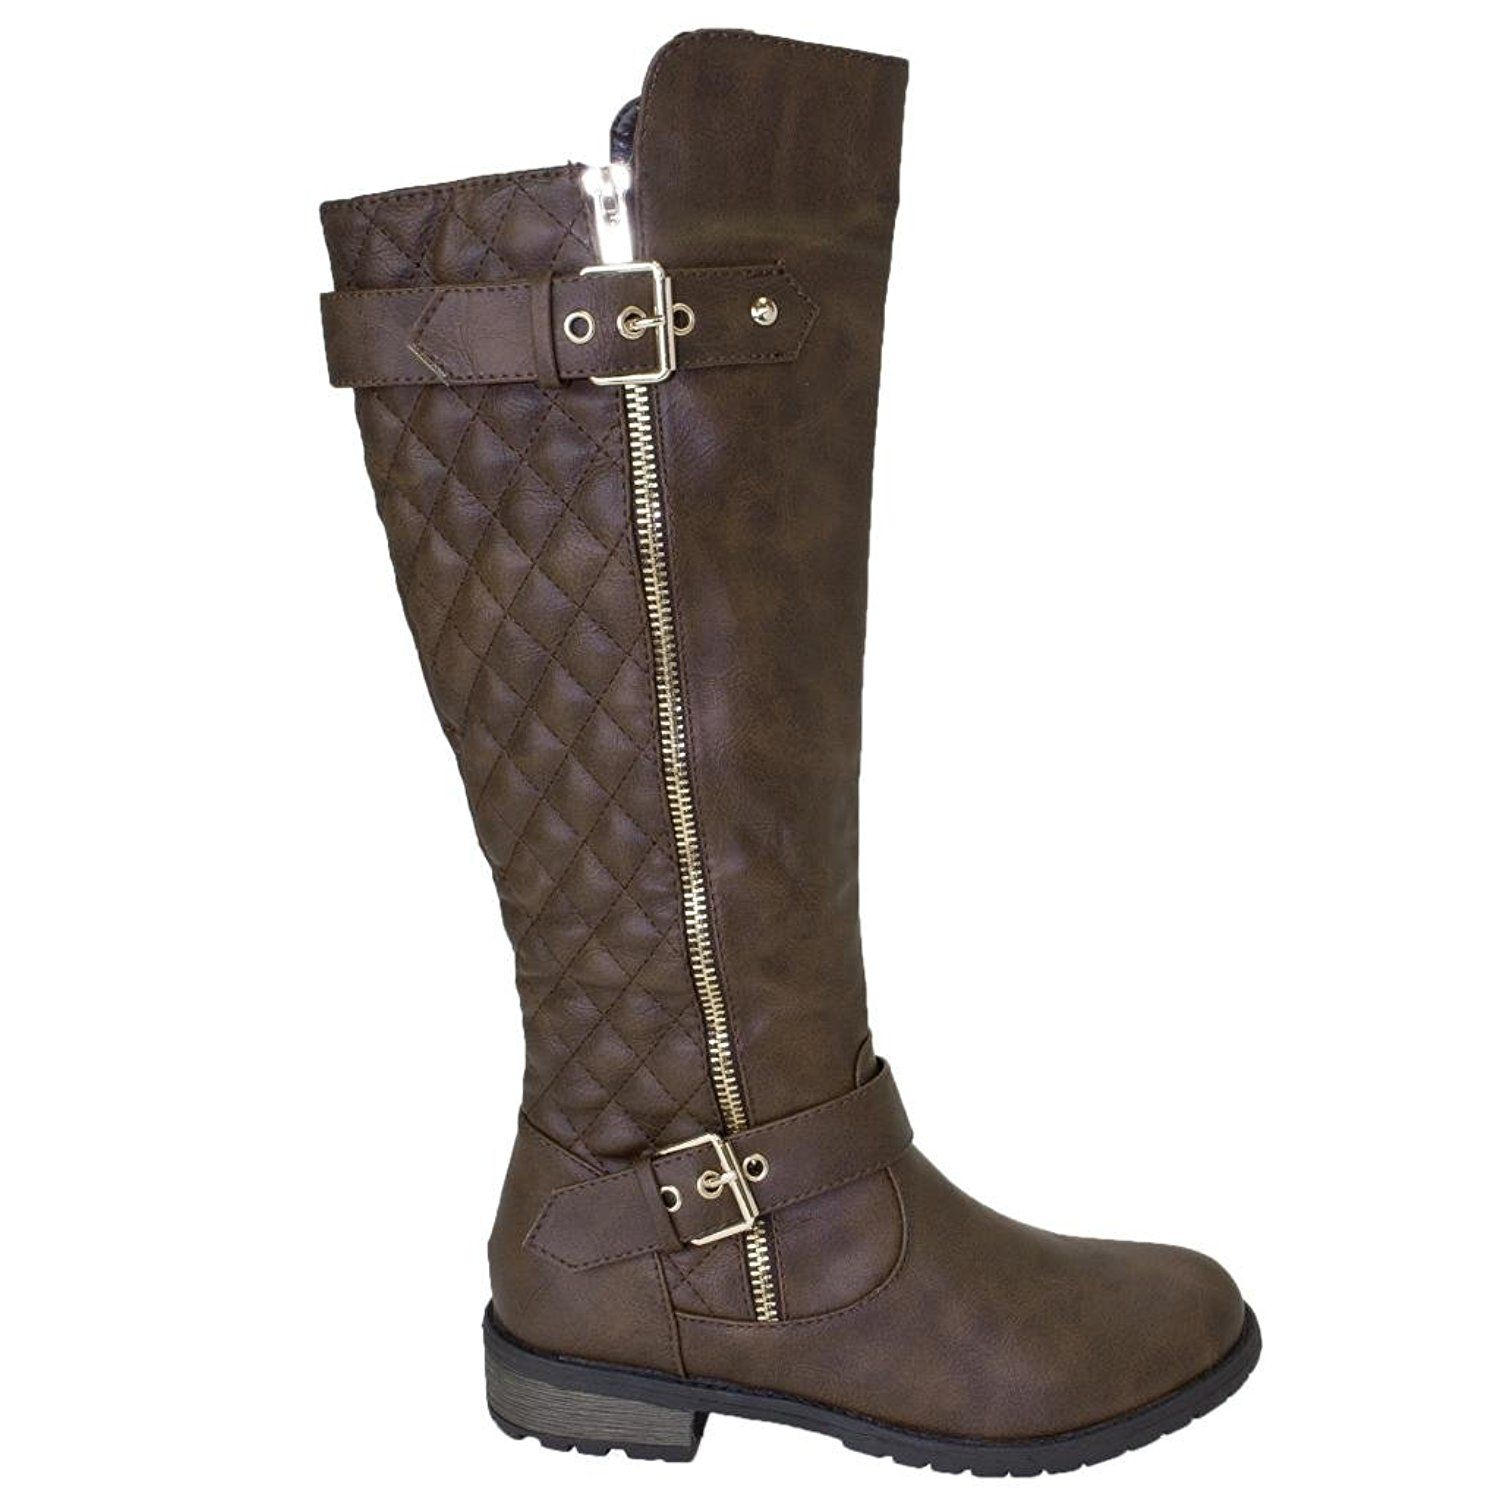 Womens Women's Zipper Quilted Buckle Knee High Riding Boots Trends SNJ Shoes Outlet Shop Size 39